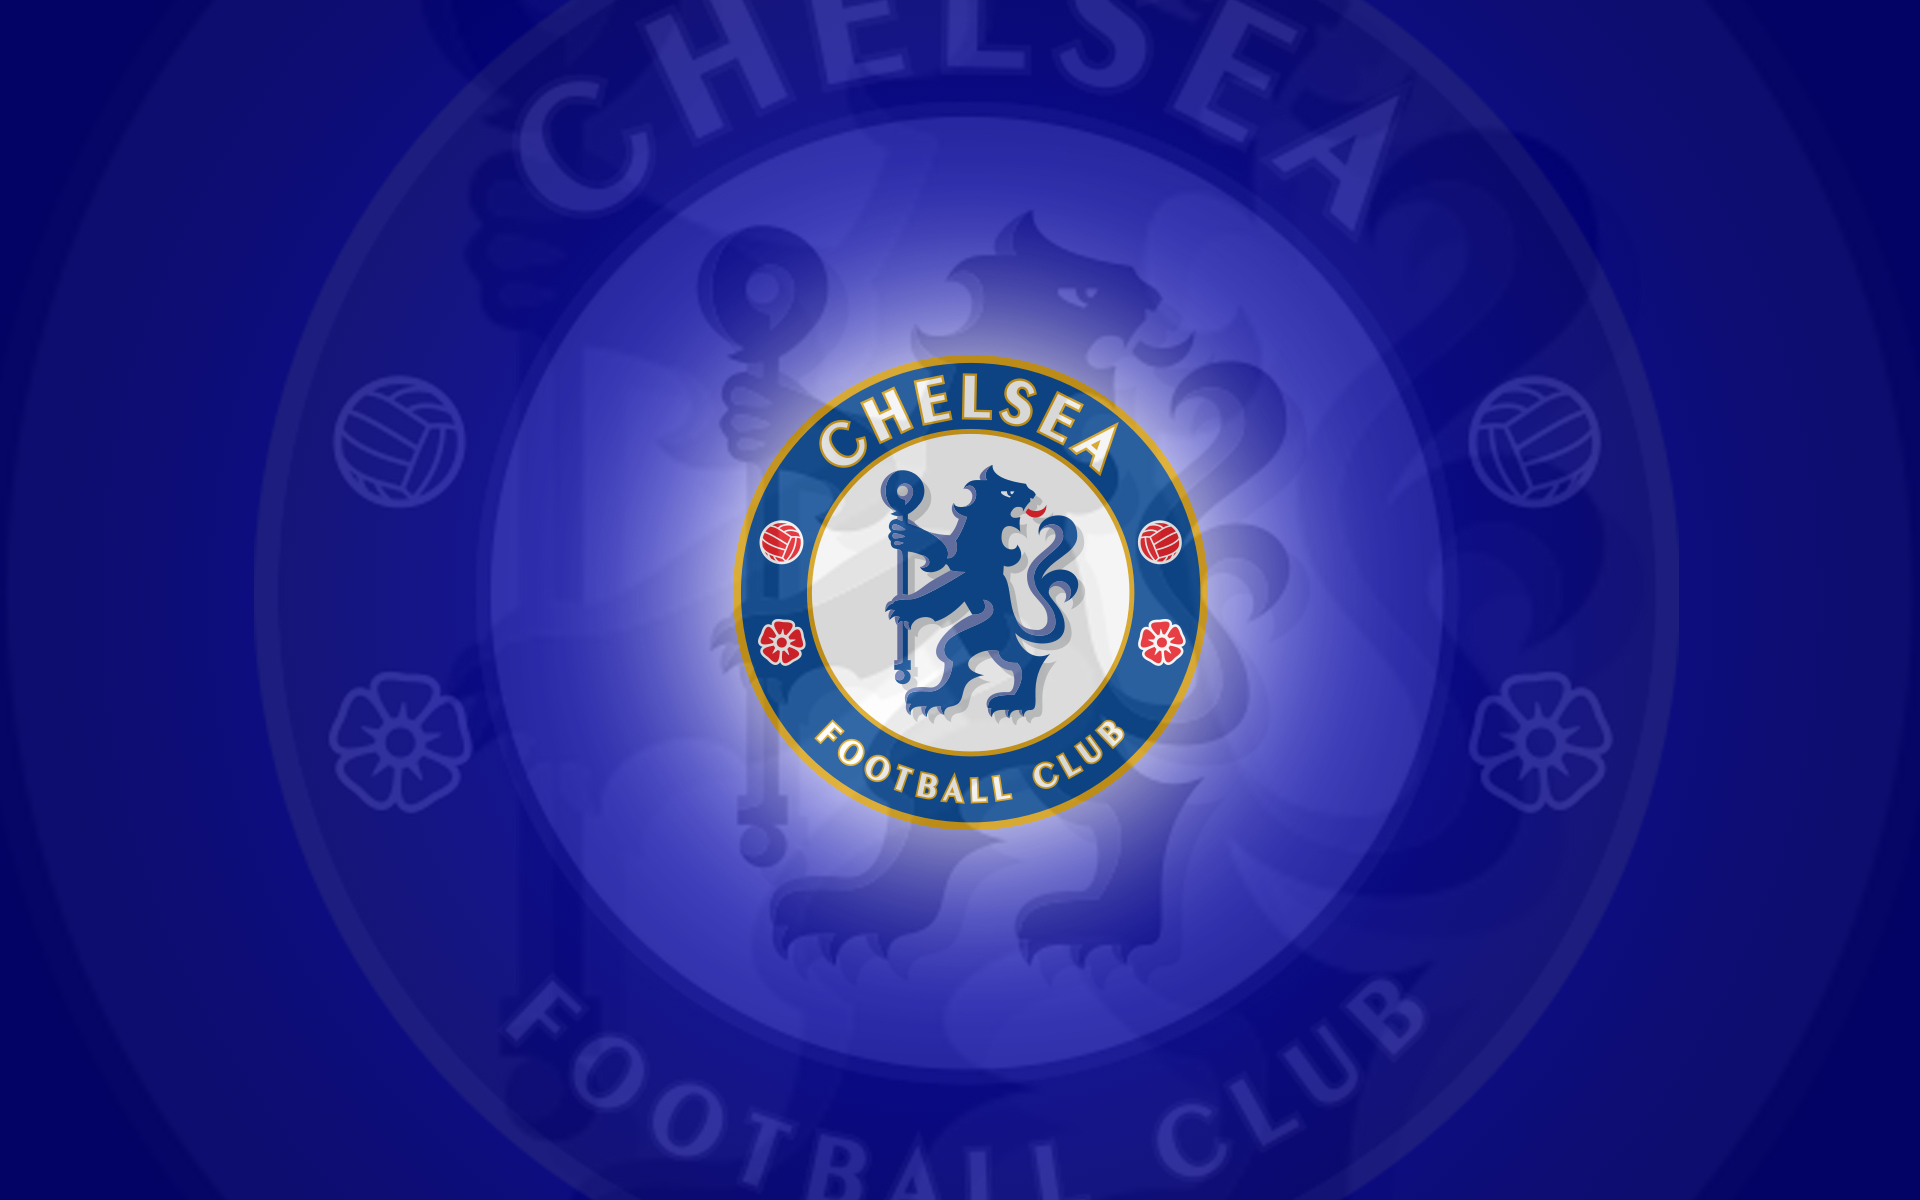 46+] Chelsea Football Club Wallpaper on WallpaperSafari